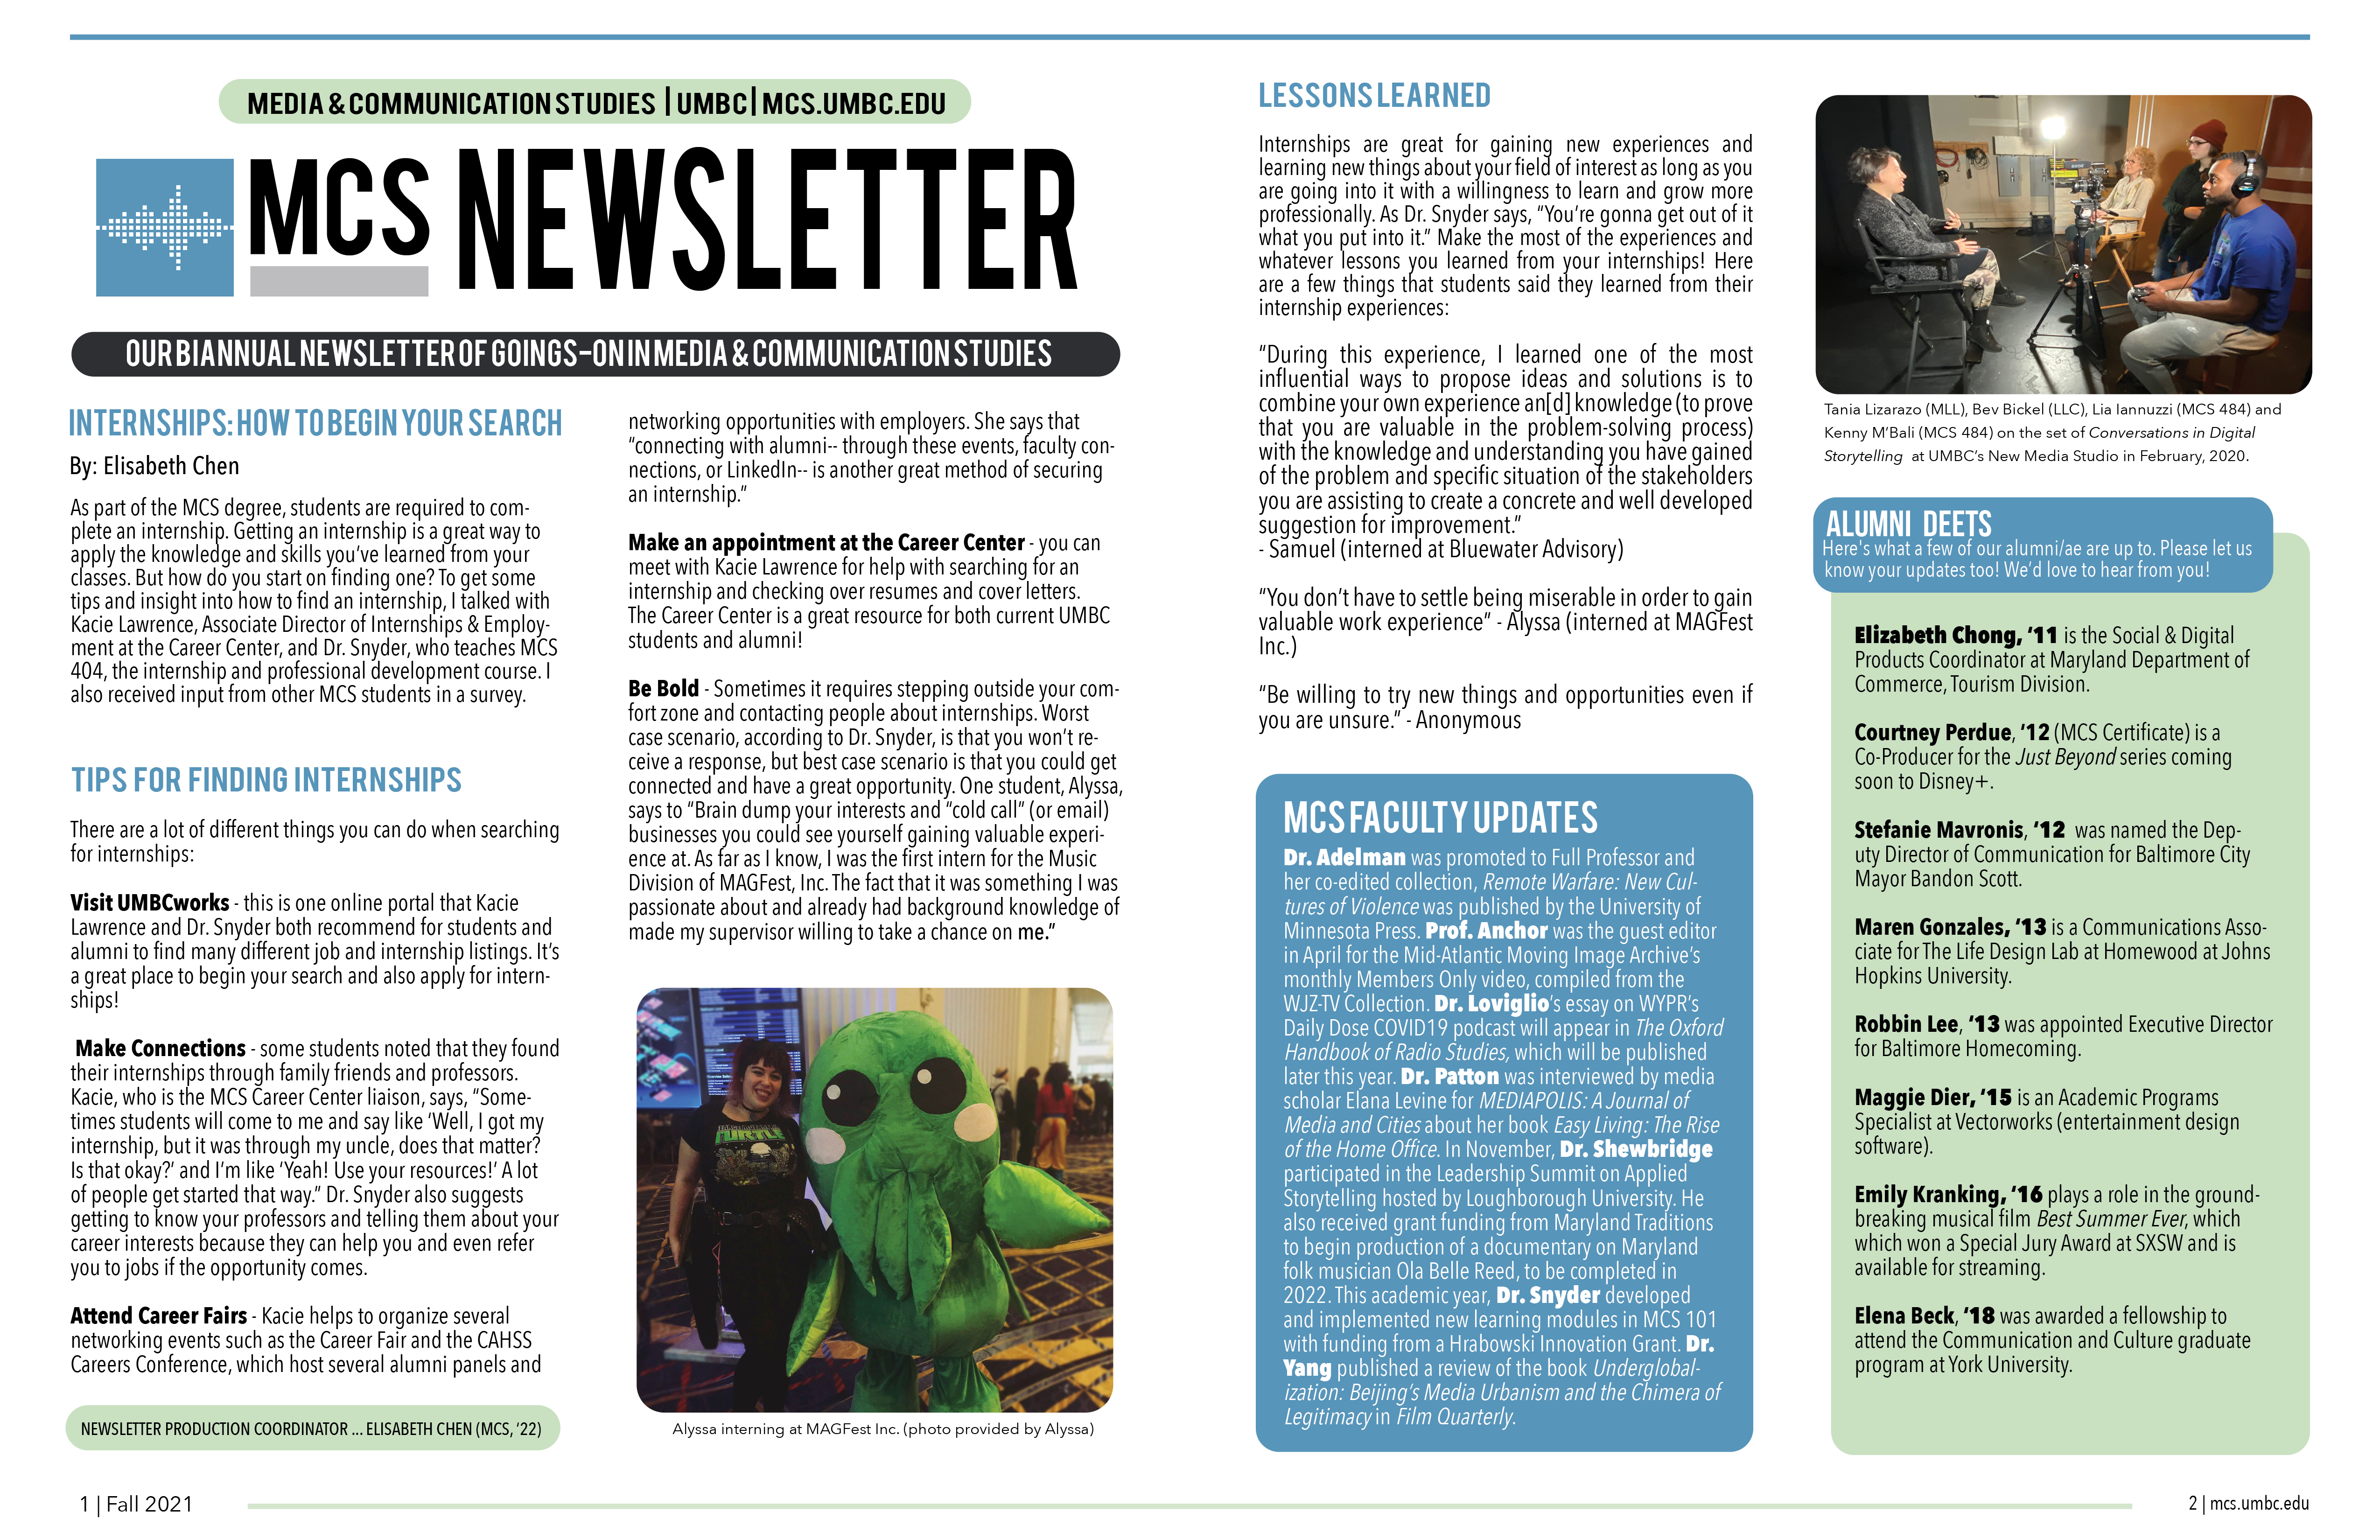 Check out the MCS Newsletter!